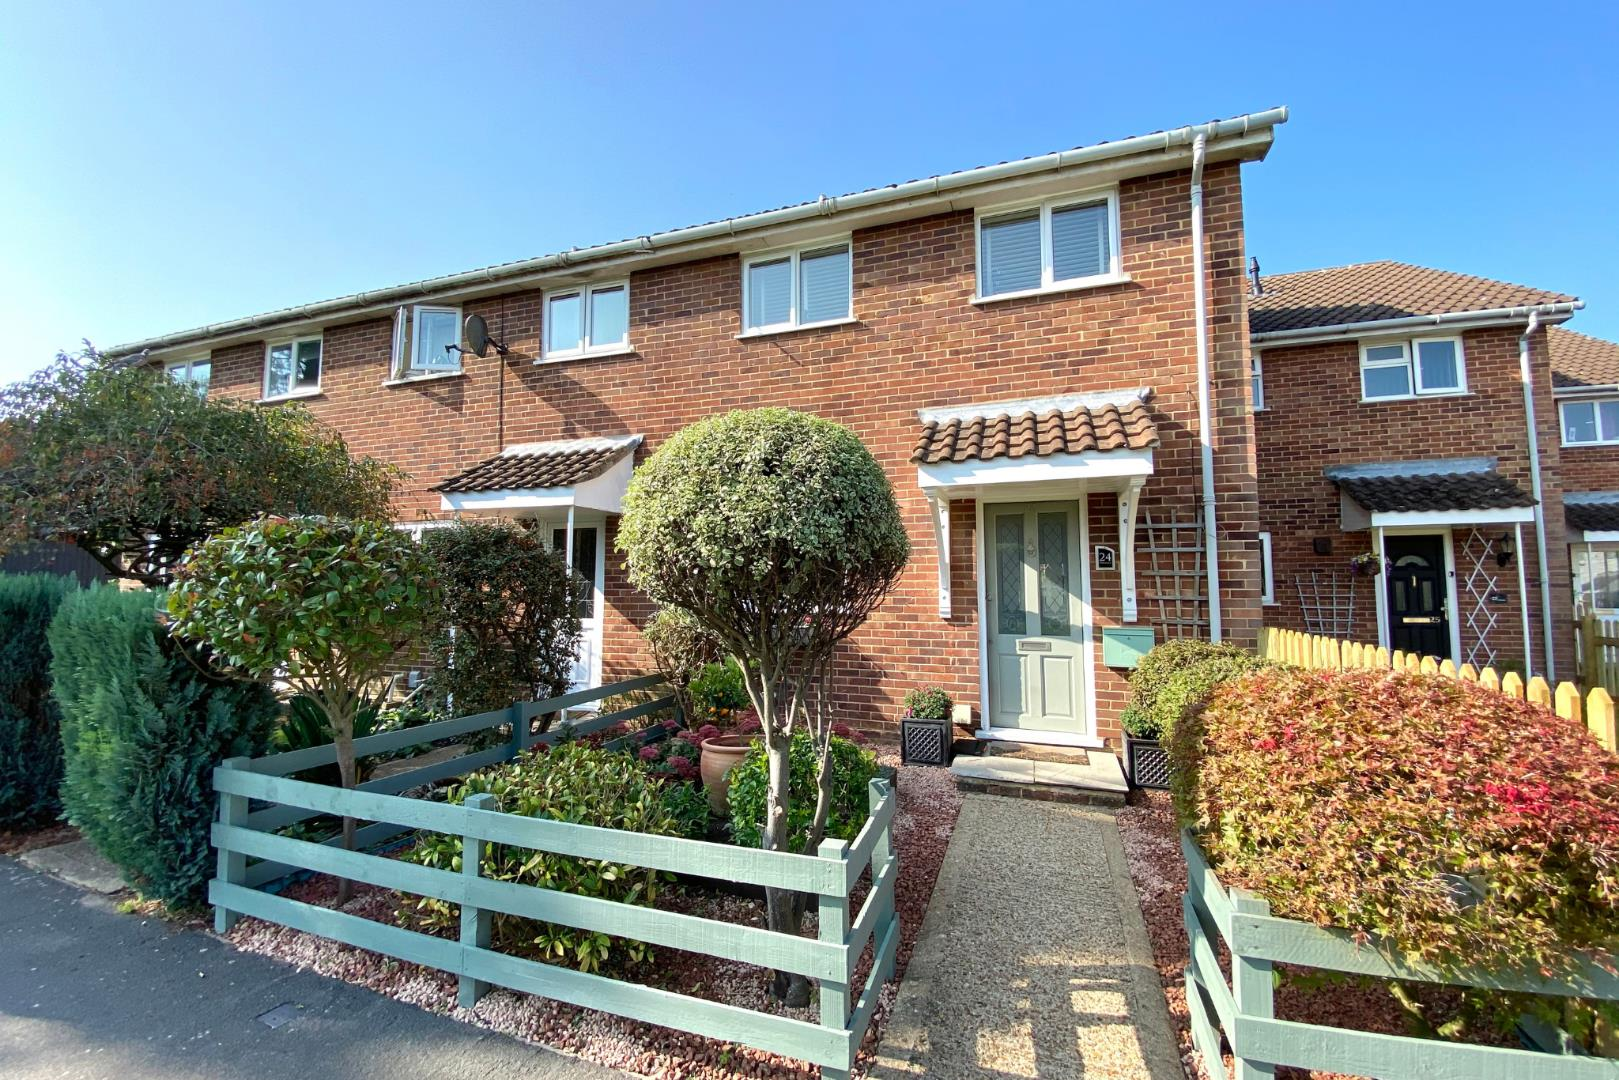 2 bed house for sale, RG12